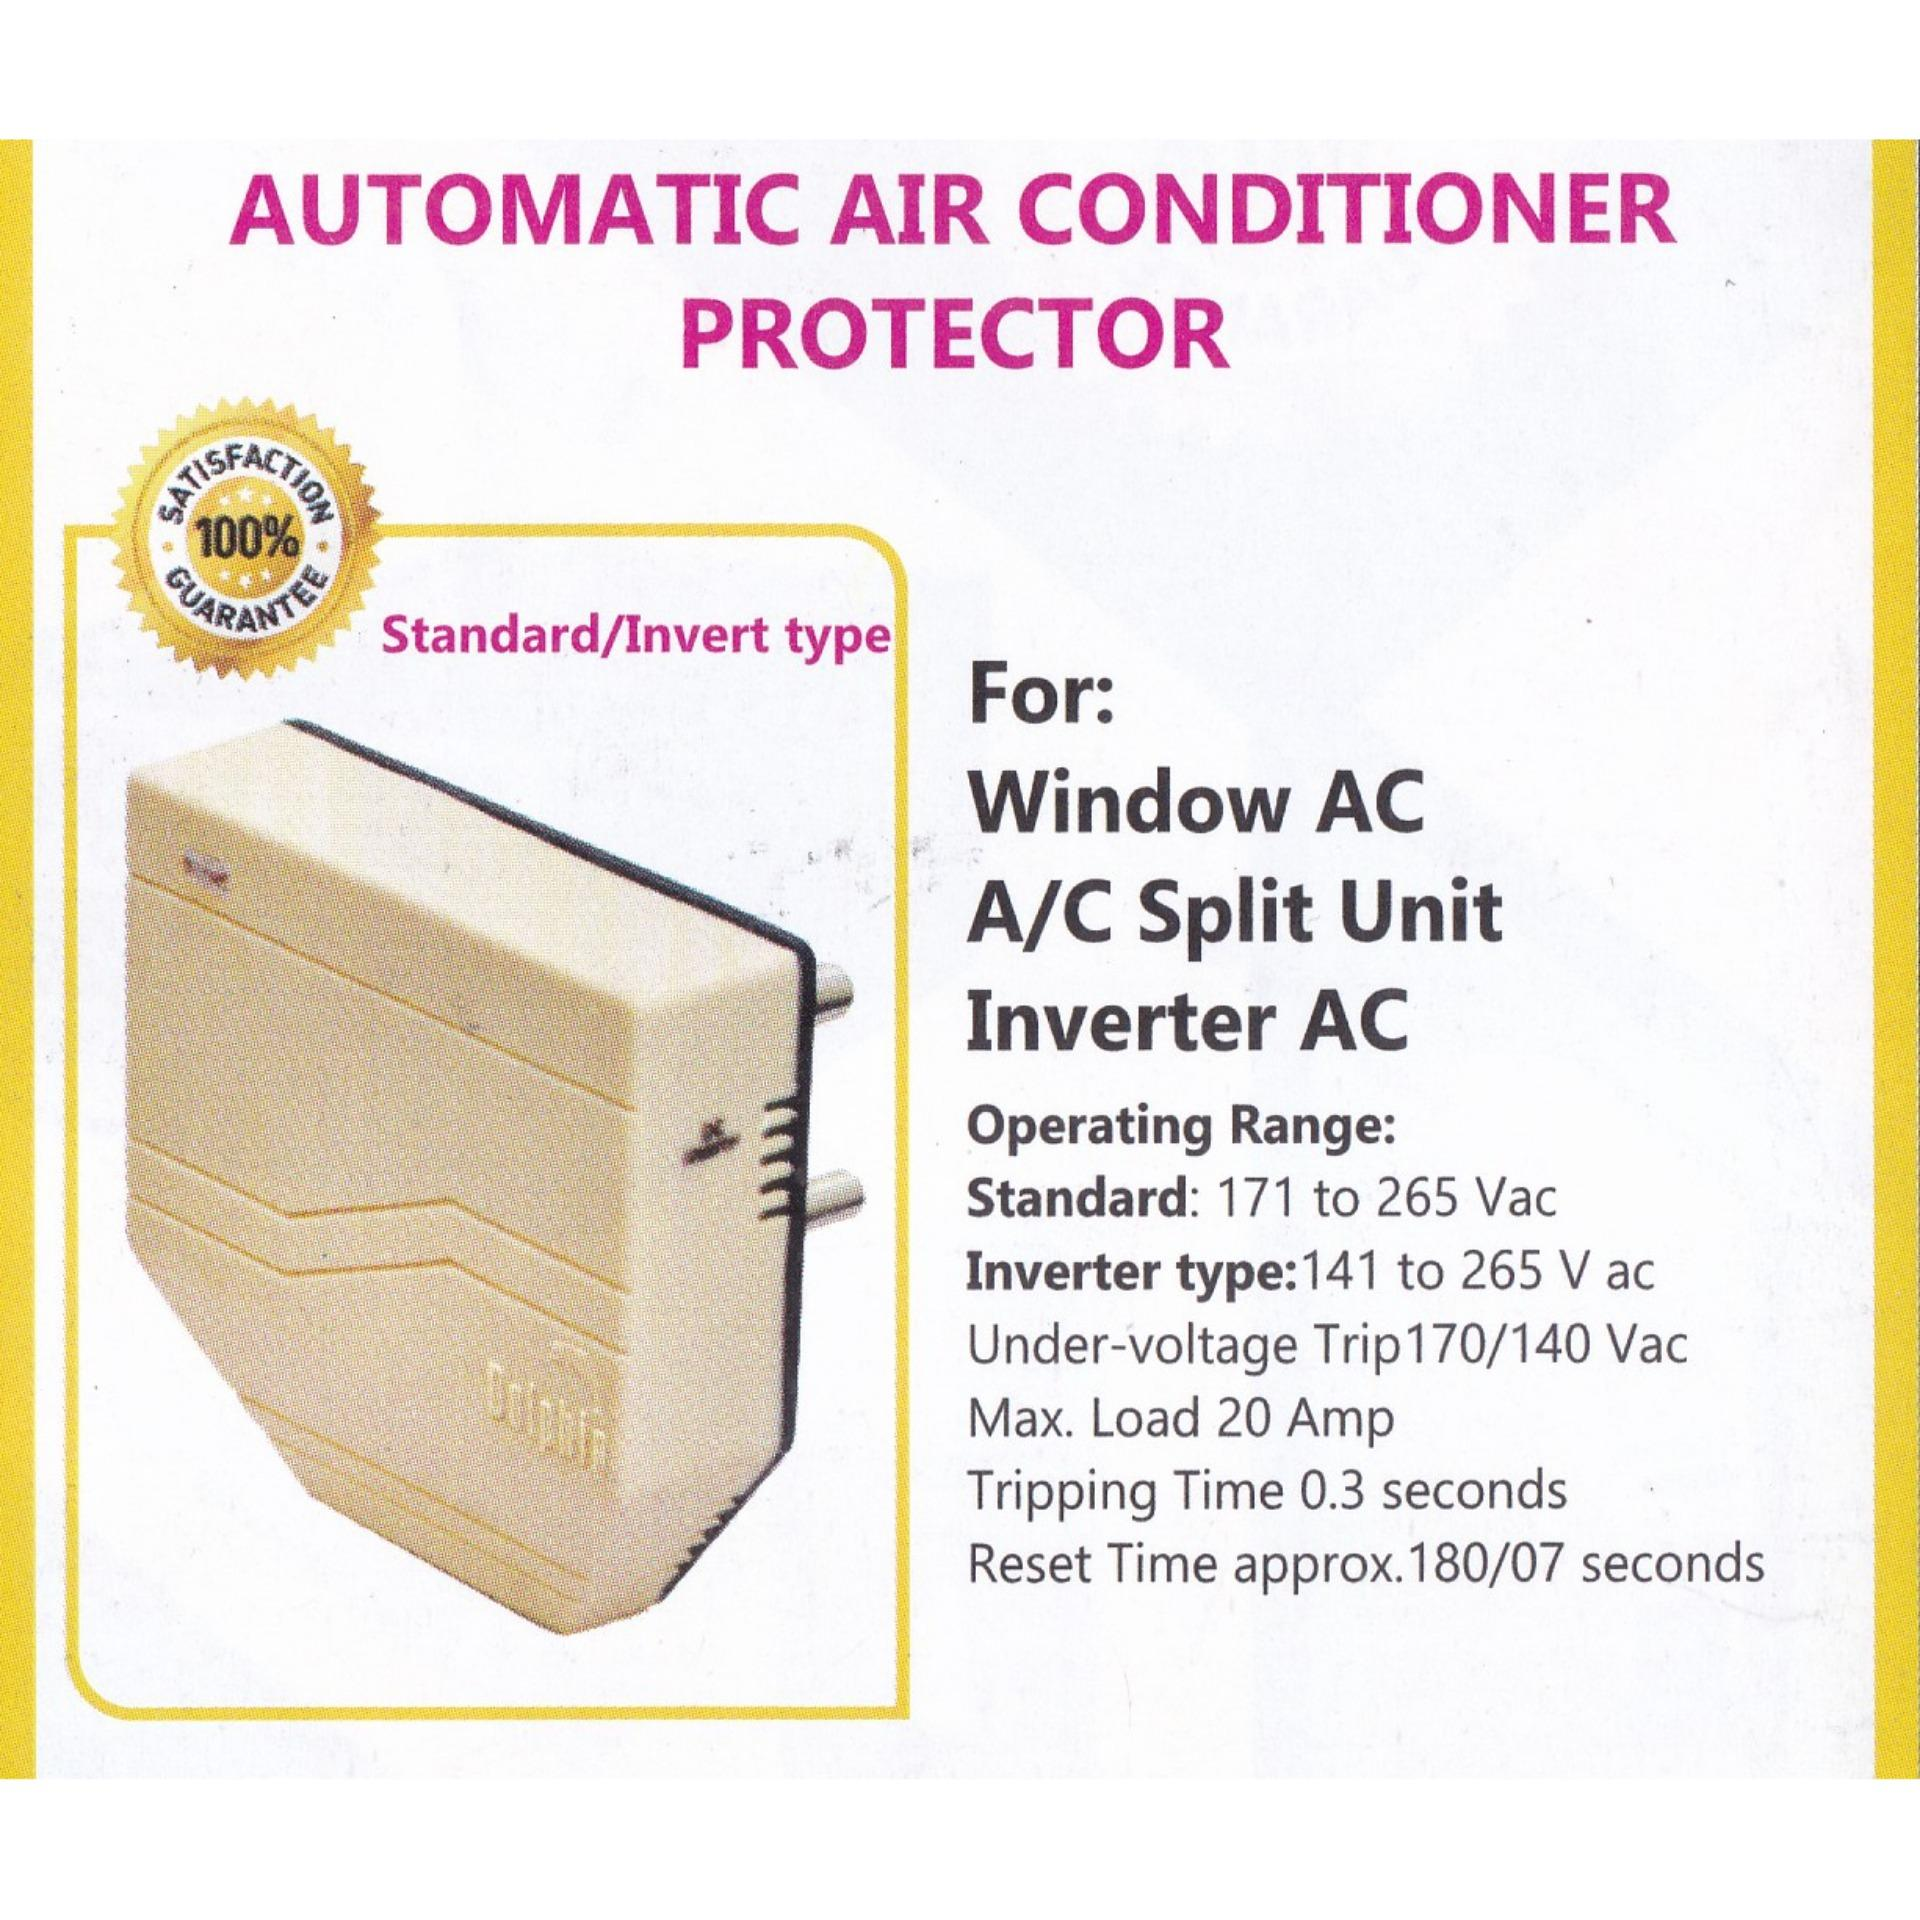 Automatic Air Conditioner Protector - Voltage Protector - Surge Protector